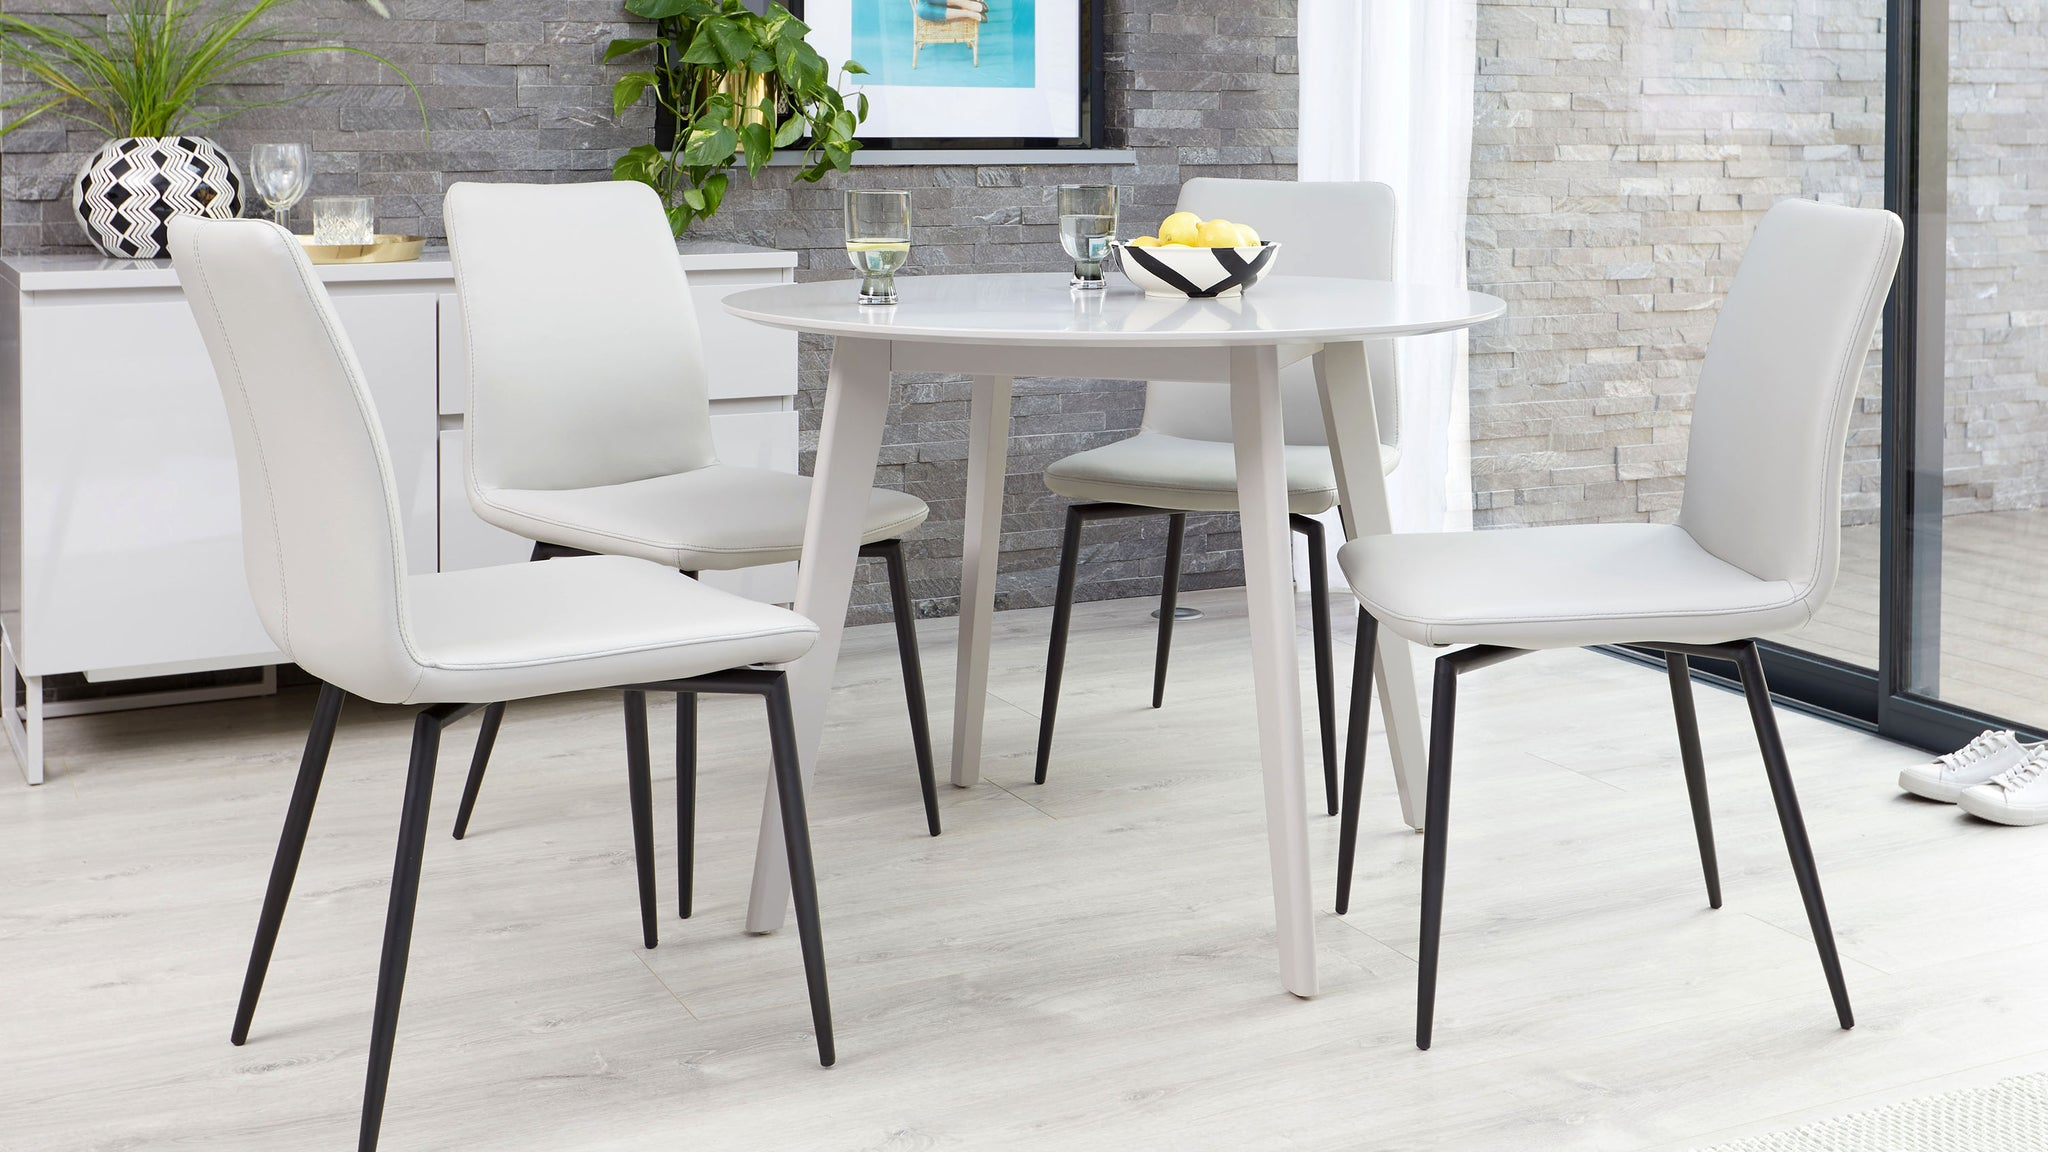 Terni Matt Grey And Bella Leather 4 Seater Dining Set